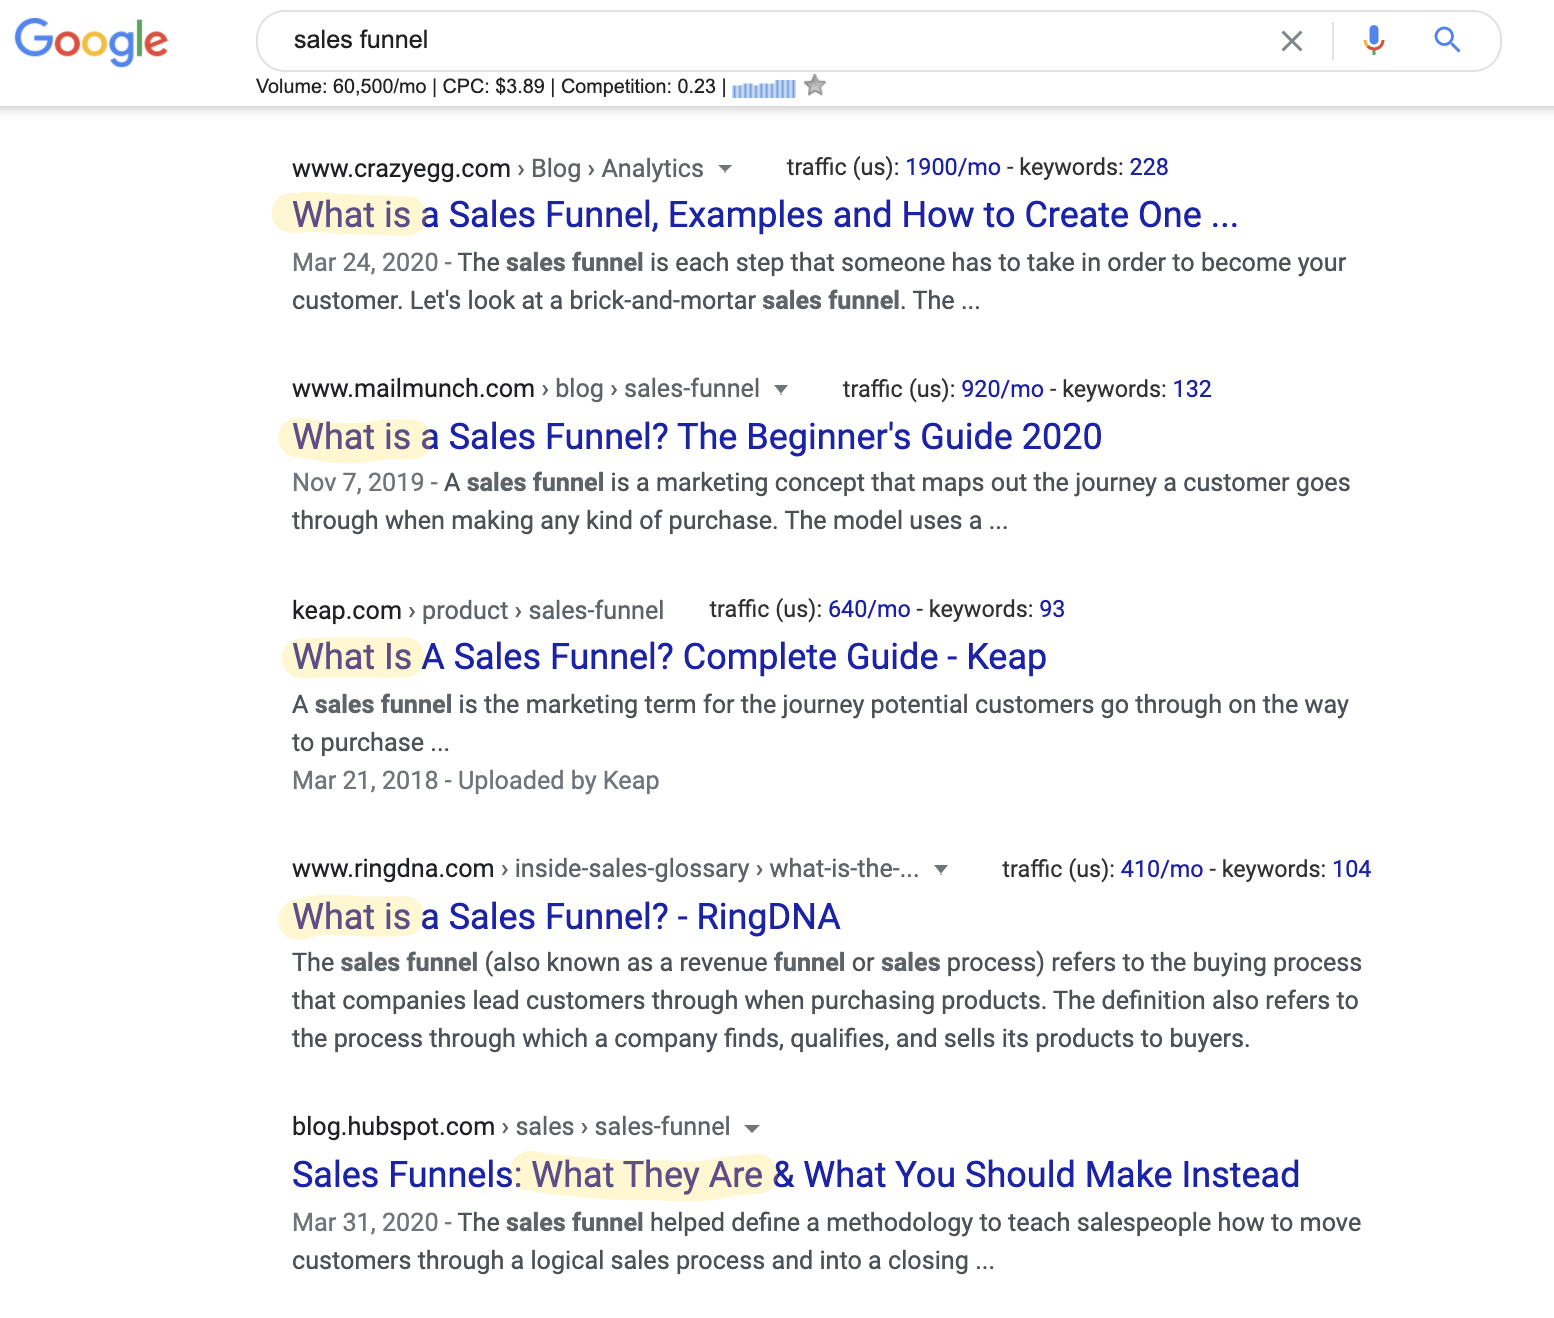 search results for sales funnel